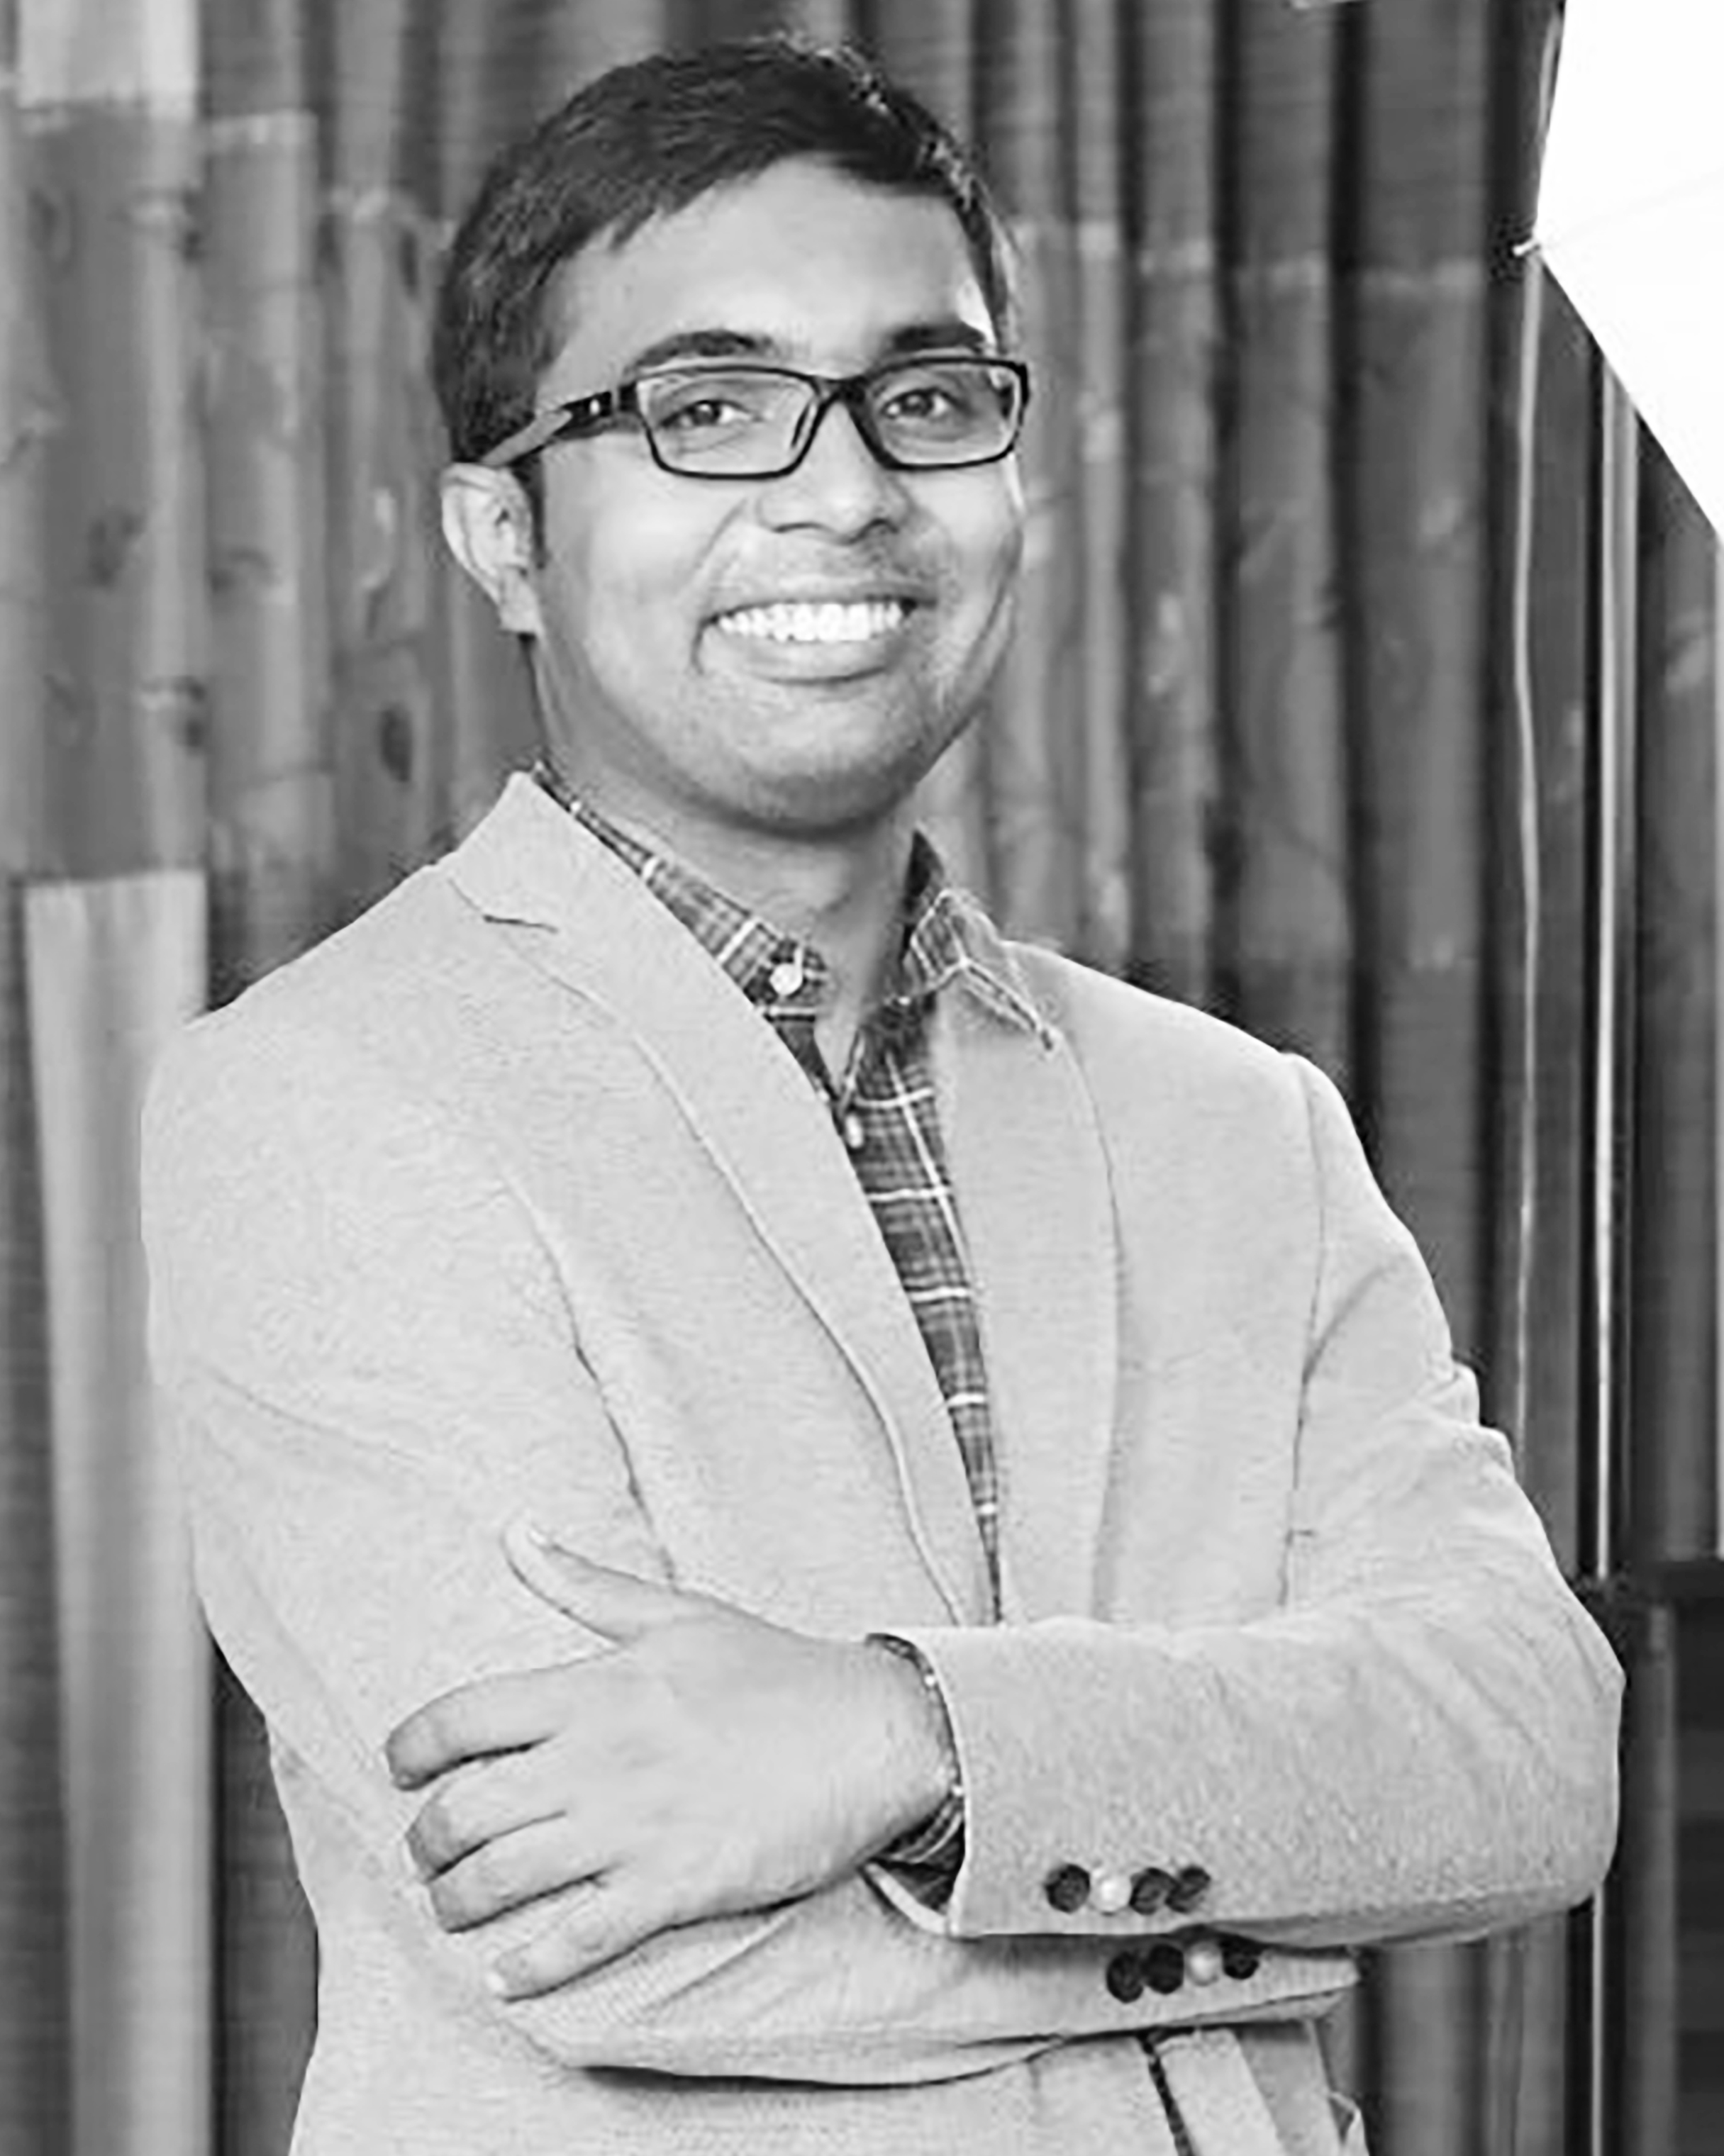 Chetan R Tippa, - is holding a Masters degree in architecture and environmental design from the University of Nottingham. He focuses on sustainable building design & Green building certifications (GRIHA, LEED USGBC, IGBC, and LBC). He has a vision for creating a sustainable built environment throughout the country. He wants to contribute to the protection and conservation of natural resources and hopes that the effort will translate in to reality for the future generations. His specialities are Environmental Design and Planning, Low and Zero Carbon Technologies, Green Building certification and Natural Daylight & ventilation. He has worked on IIM Trichy - GRIHA LD (in progress),Decathlon store,Ecociudades – Monteria in Colombia DPS school, Edificio G2 – Colombia, Ospinas - Colombia, Infosys SDB A & B – Bhubaneswar, Infosys Jaipur,Infosys Nagpur, Mixed use project at Durgapur,Prototype of roof and wall assembly – Hot and humid climate, Infosys Hubballi and Inofosys Electronic city Phase 2, Bangalore. COA License Holder, IndiaQualification:M.Arch - University of Nottingham, NottinghamB.Arch- B.V. B College of Engineering and Technology, Hubli